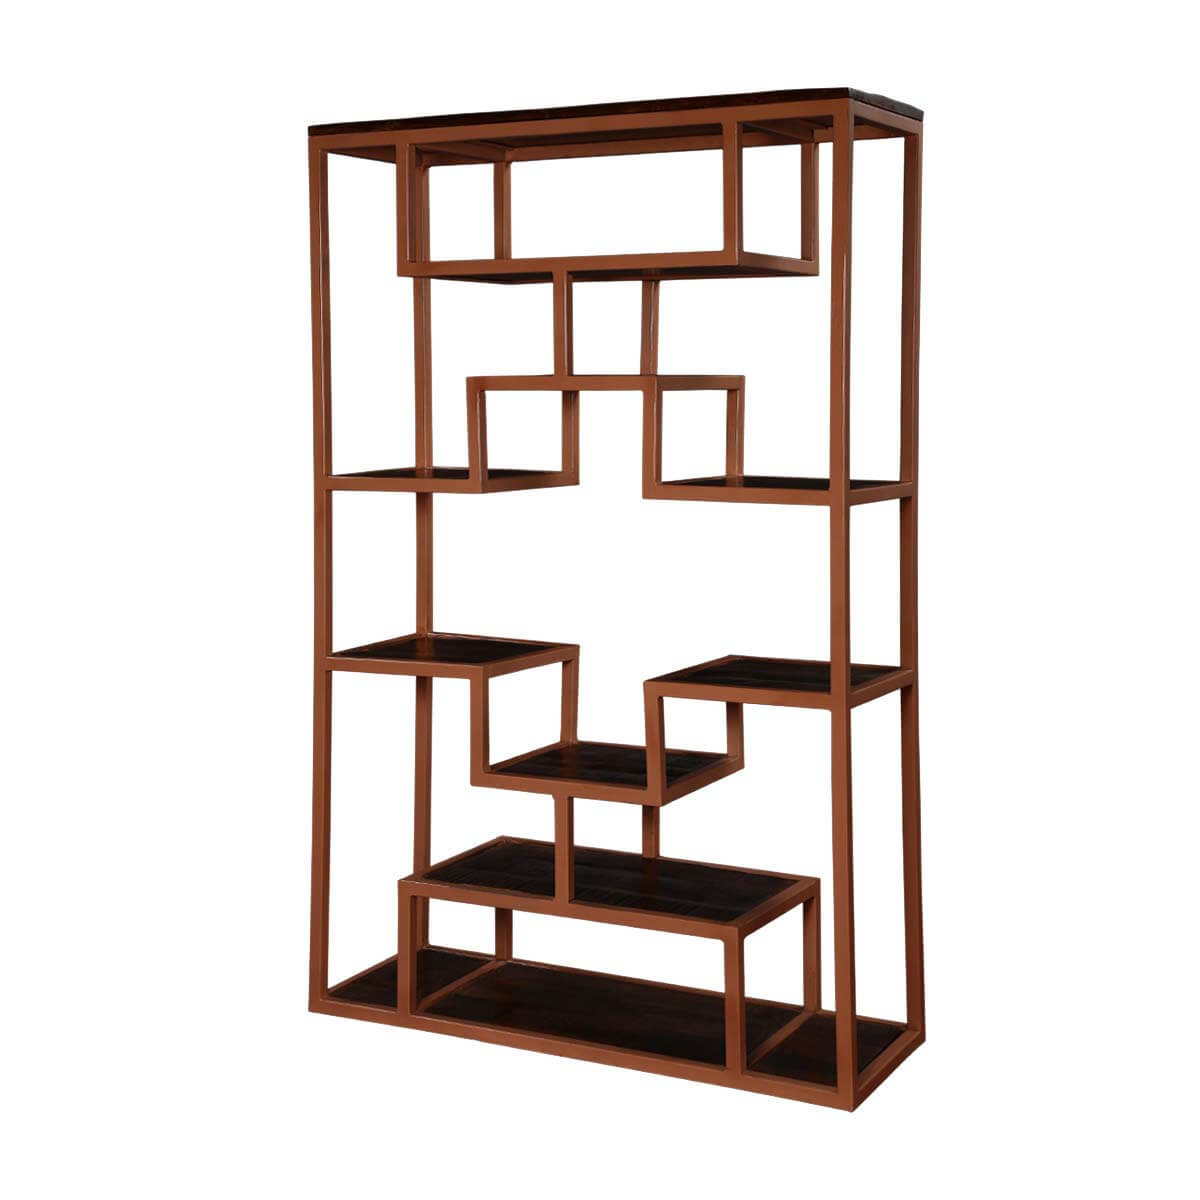 "Wood & Iron 63"" Asymmetrical Bookcase Open Display Wall Unit"